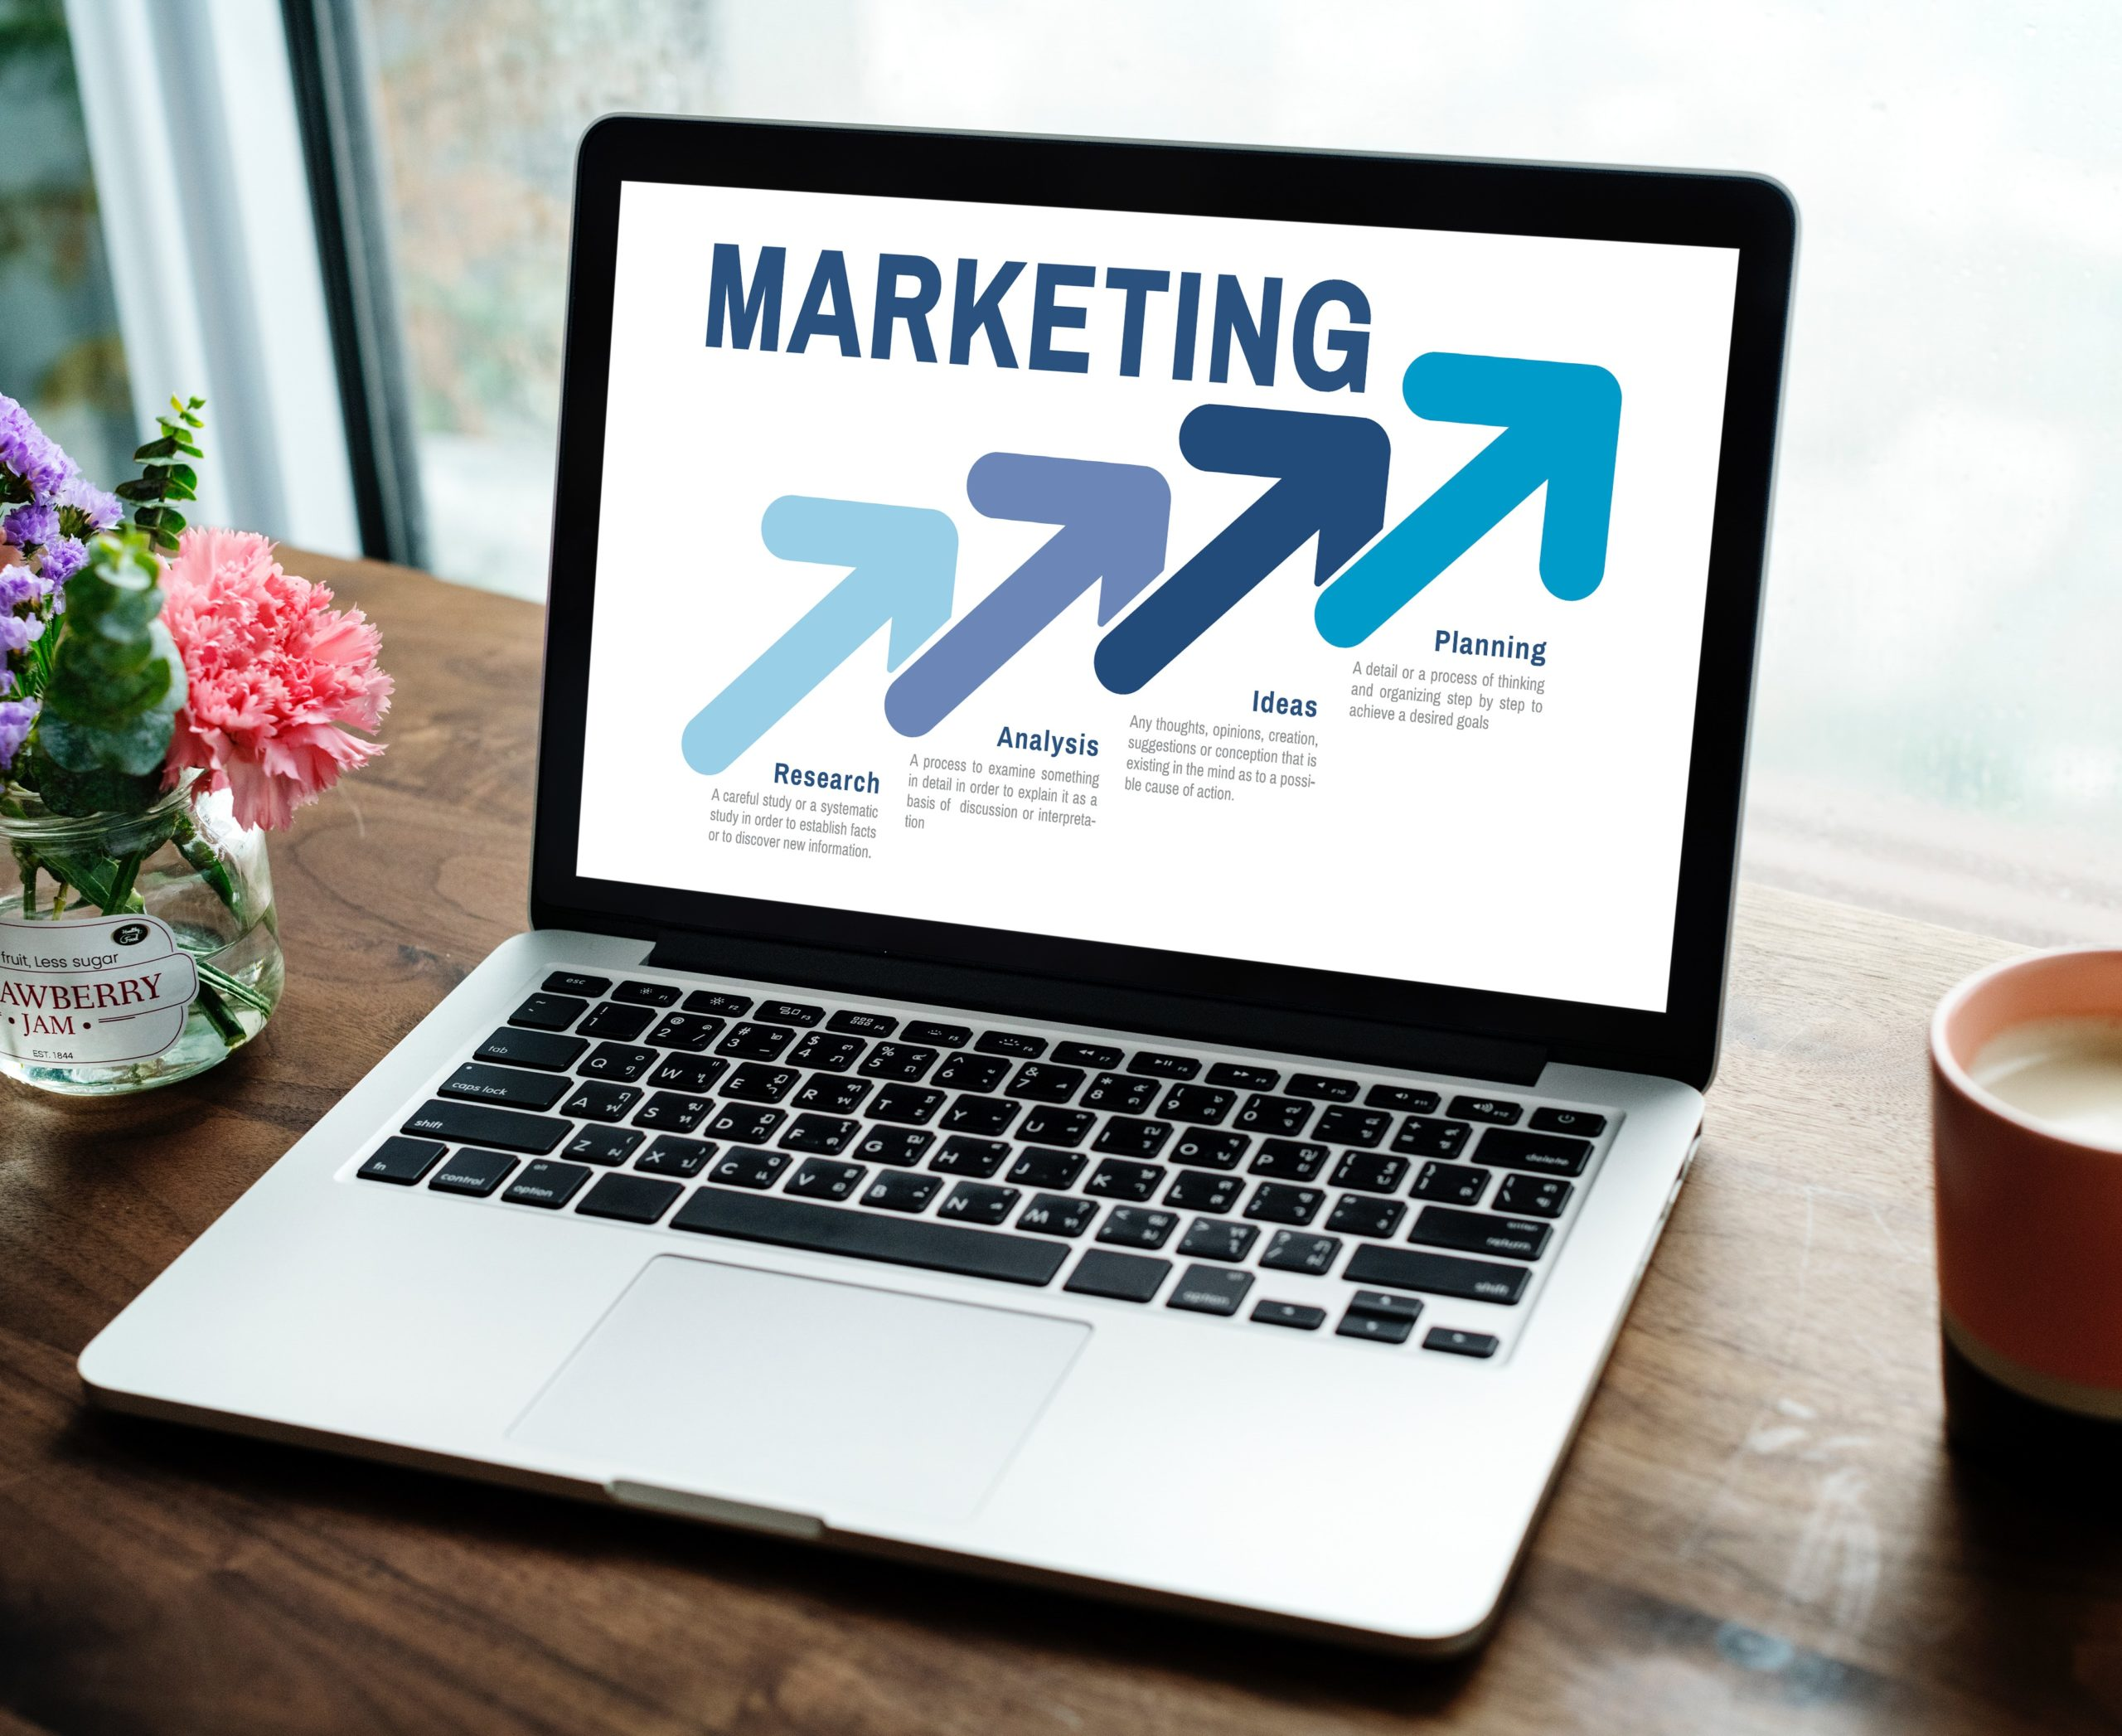 Webmarketing-et-marketing-digital-pourquoi-creer-une-persona-marketing-?